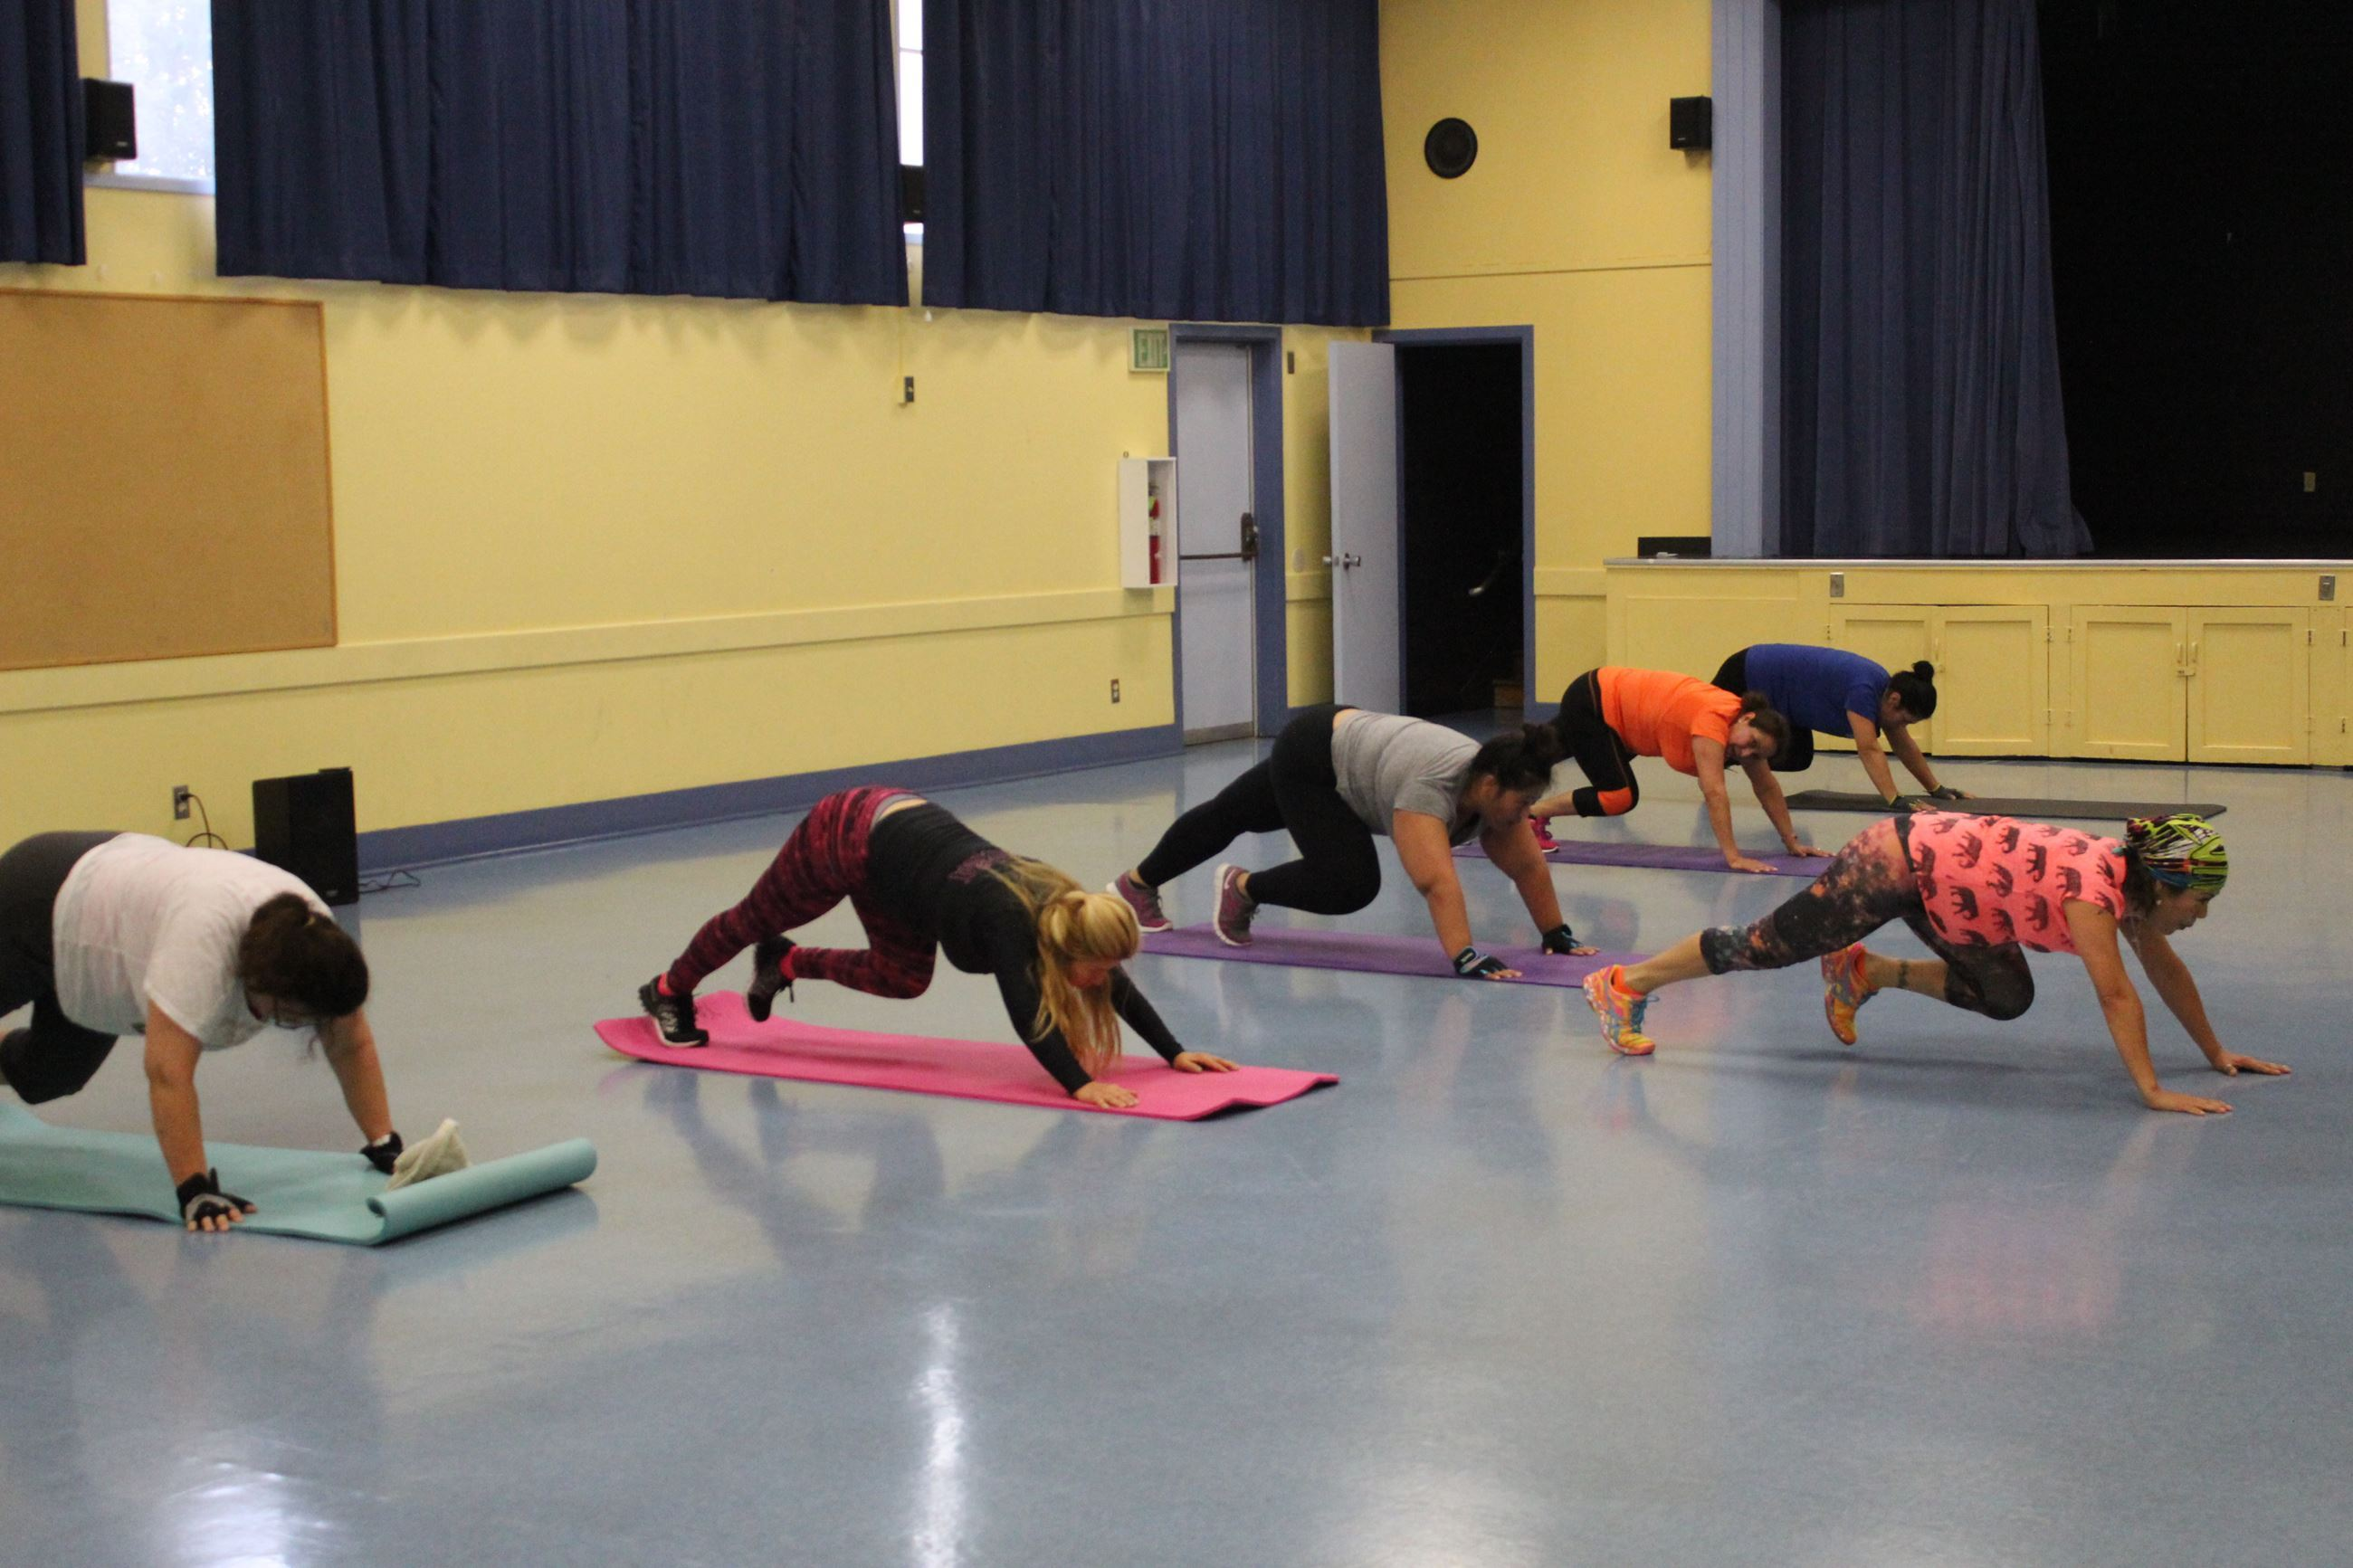 Fitness Class Participants Stretching